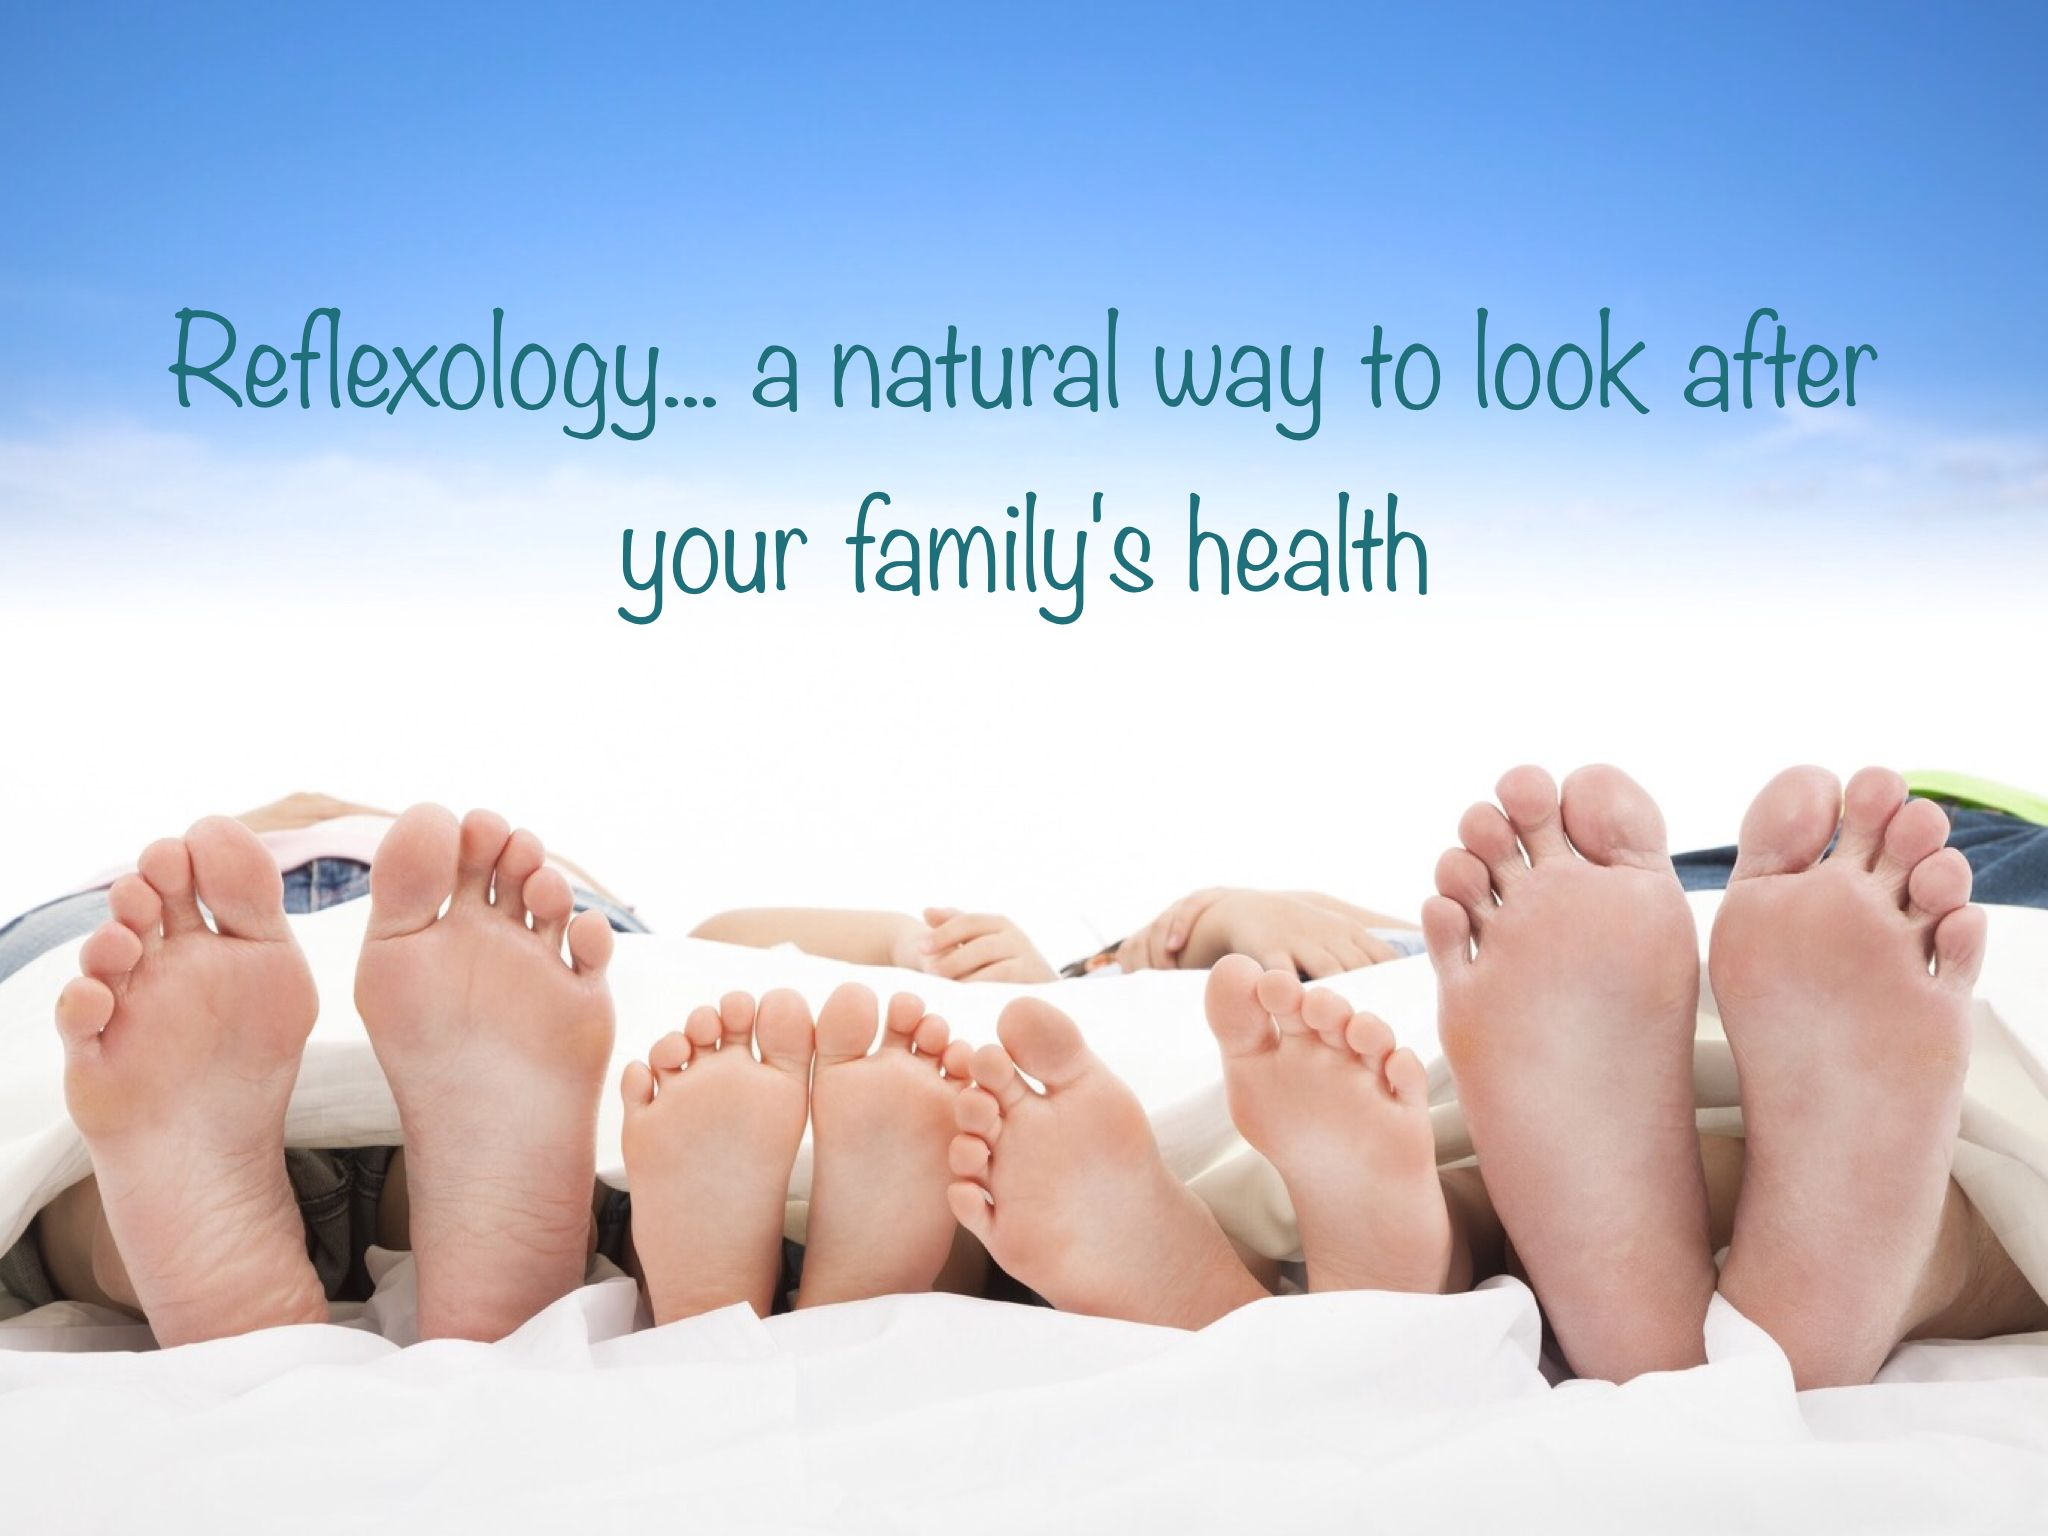 A safe way to look after your family's health and wellbeing